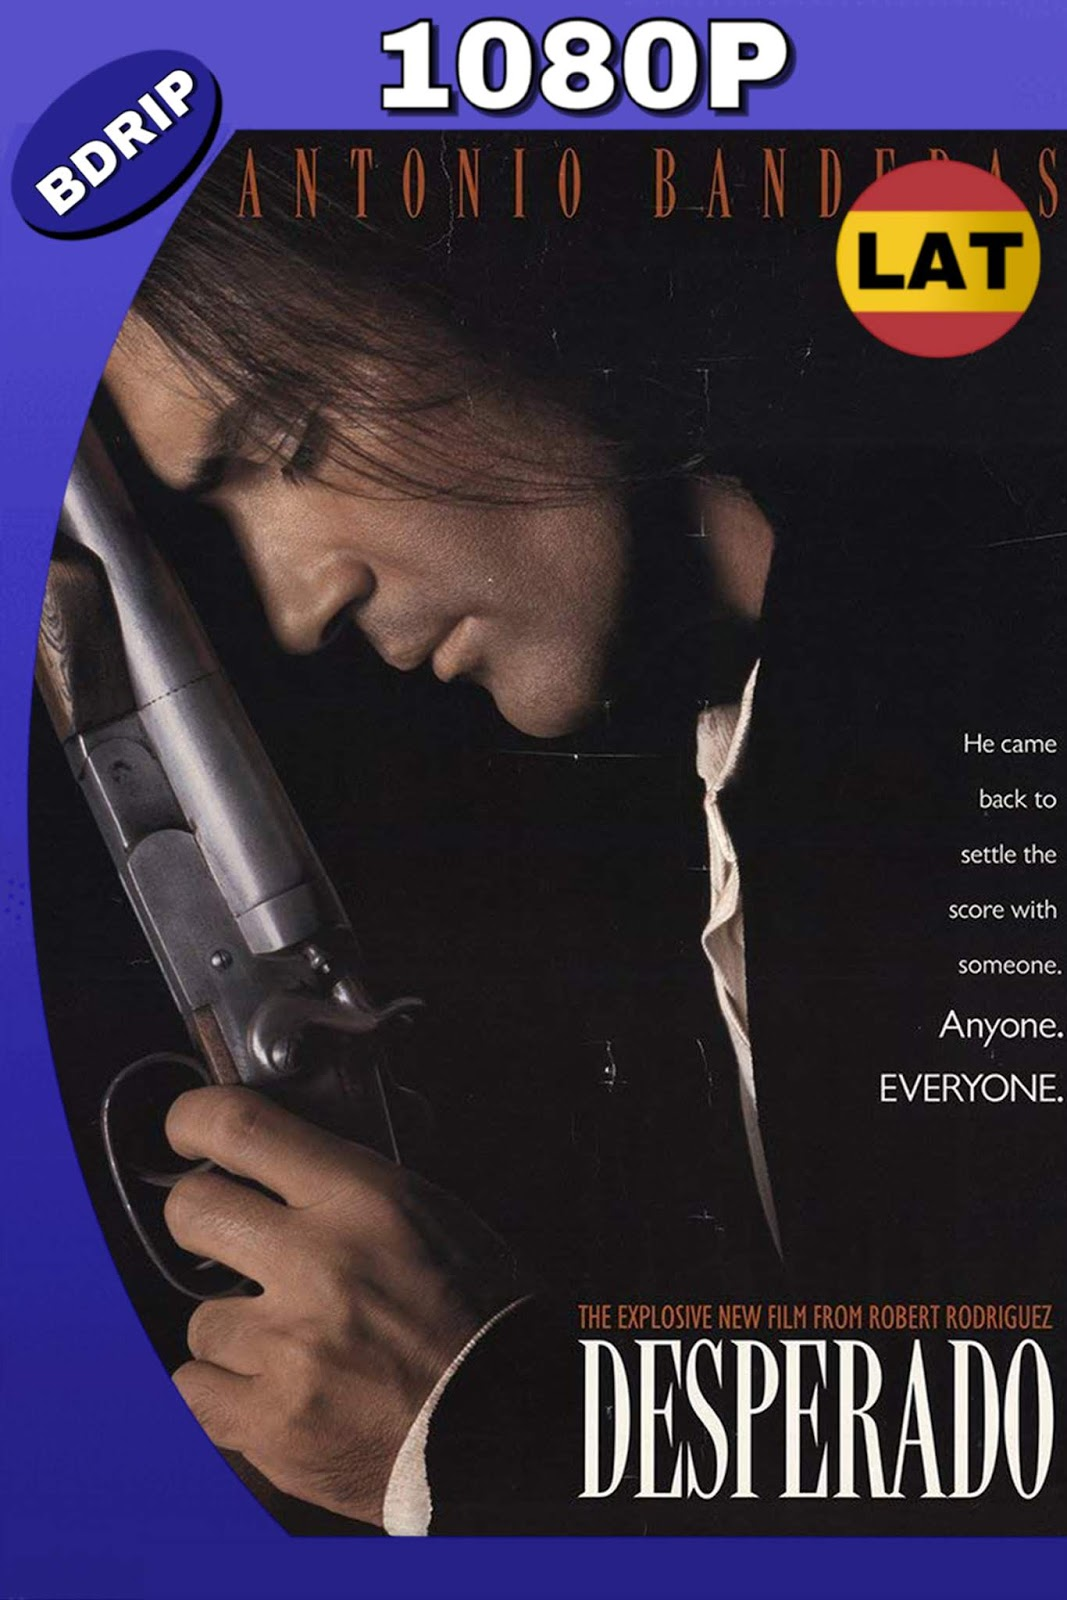 DESPERADO 1995 LAT-ING FULL 1080P 15GB.mkv